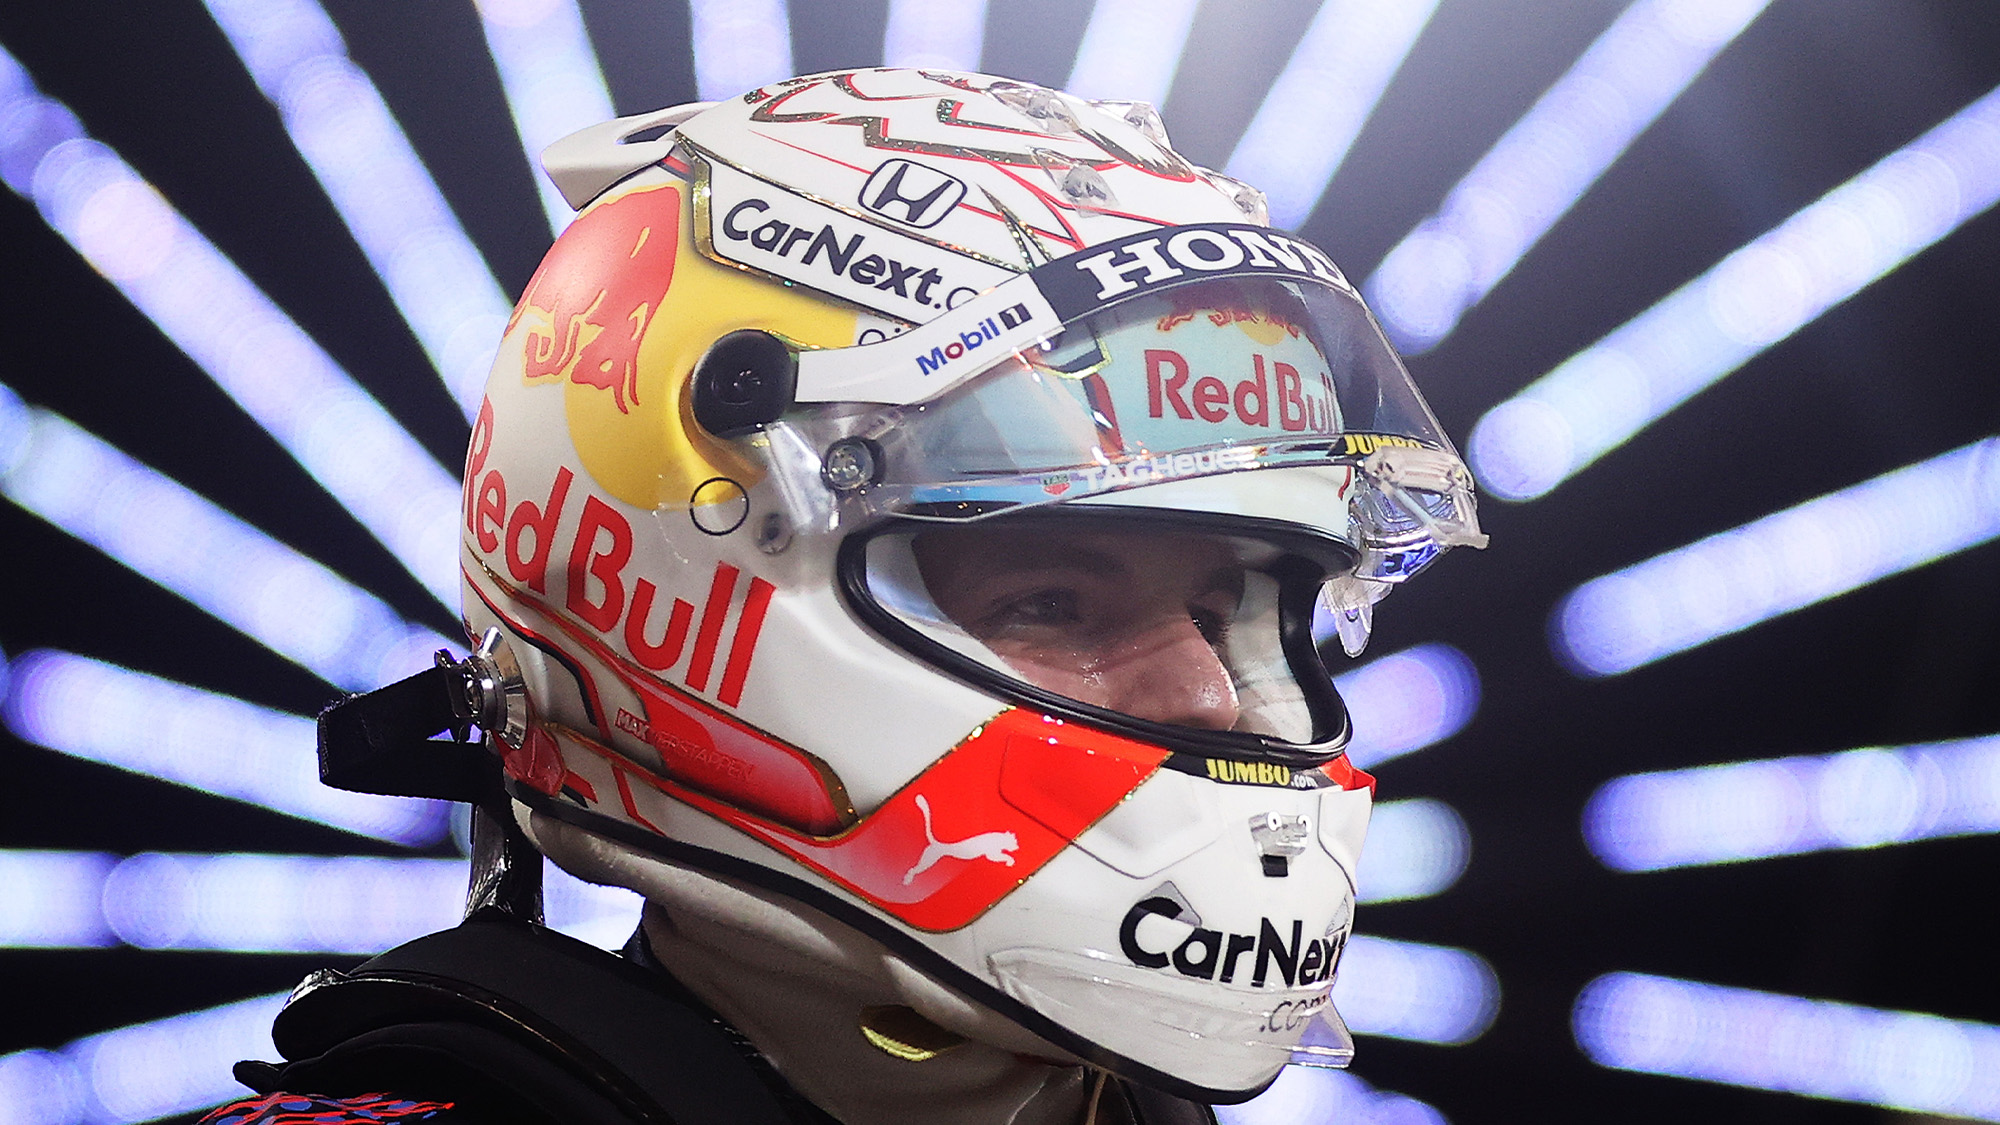 Max Verstappen after securing pole for the 2021 Bahrain Grand Prix